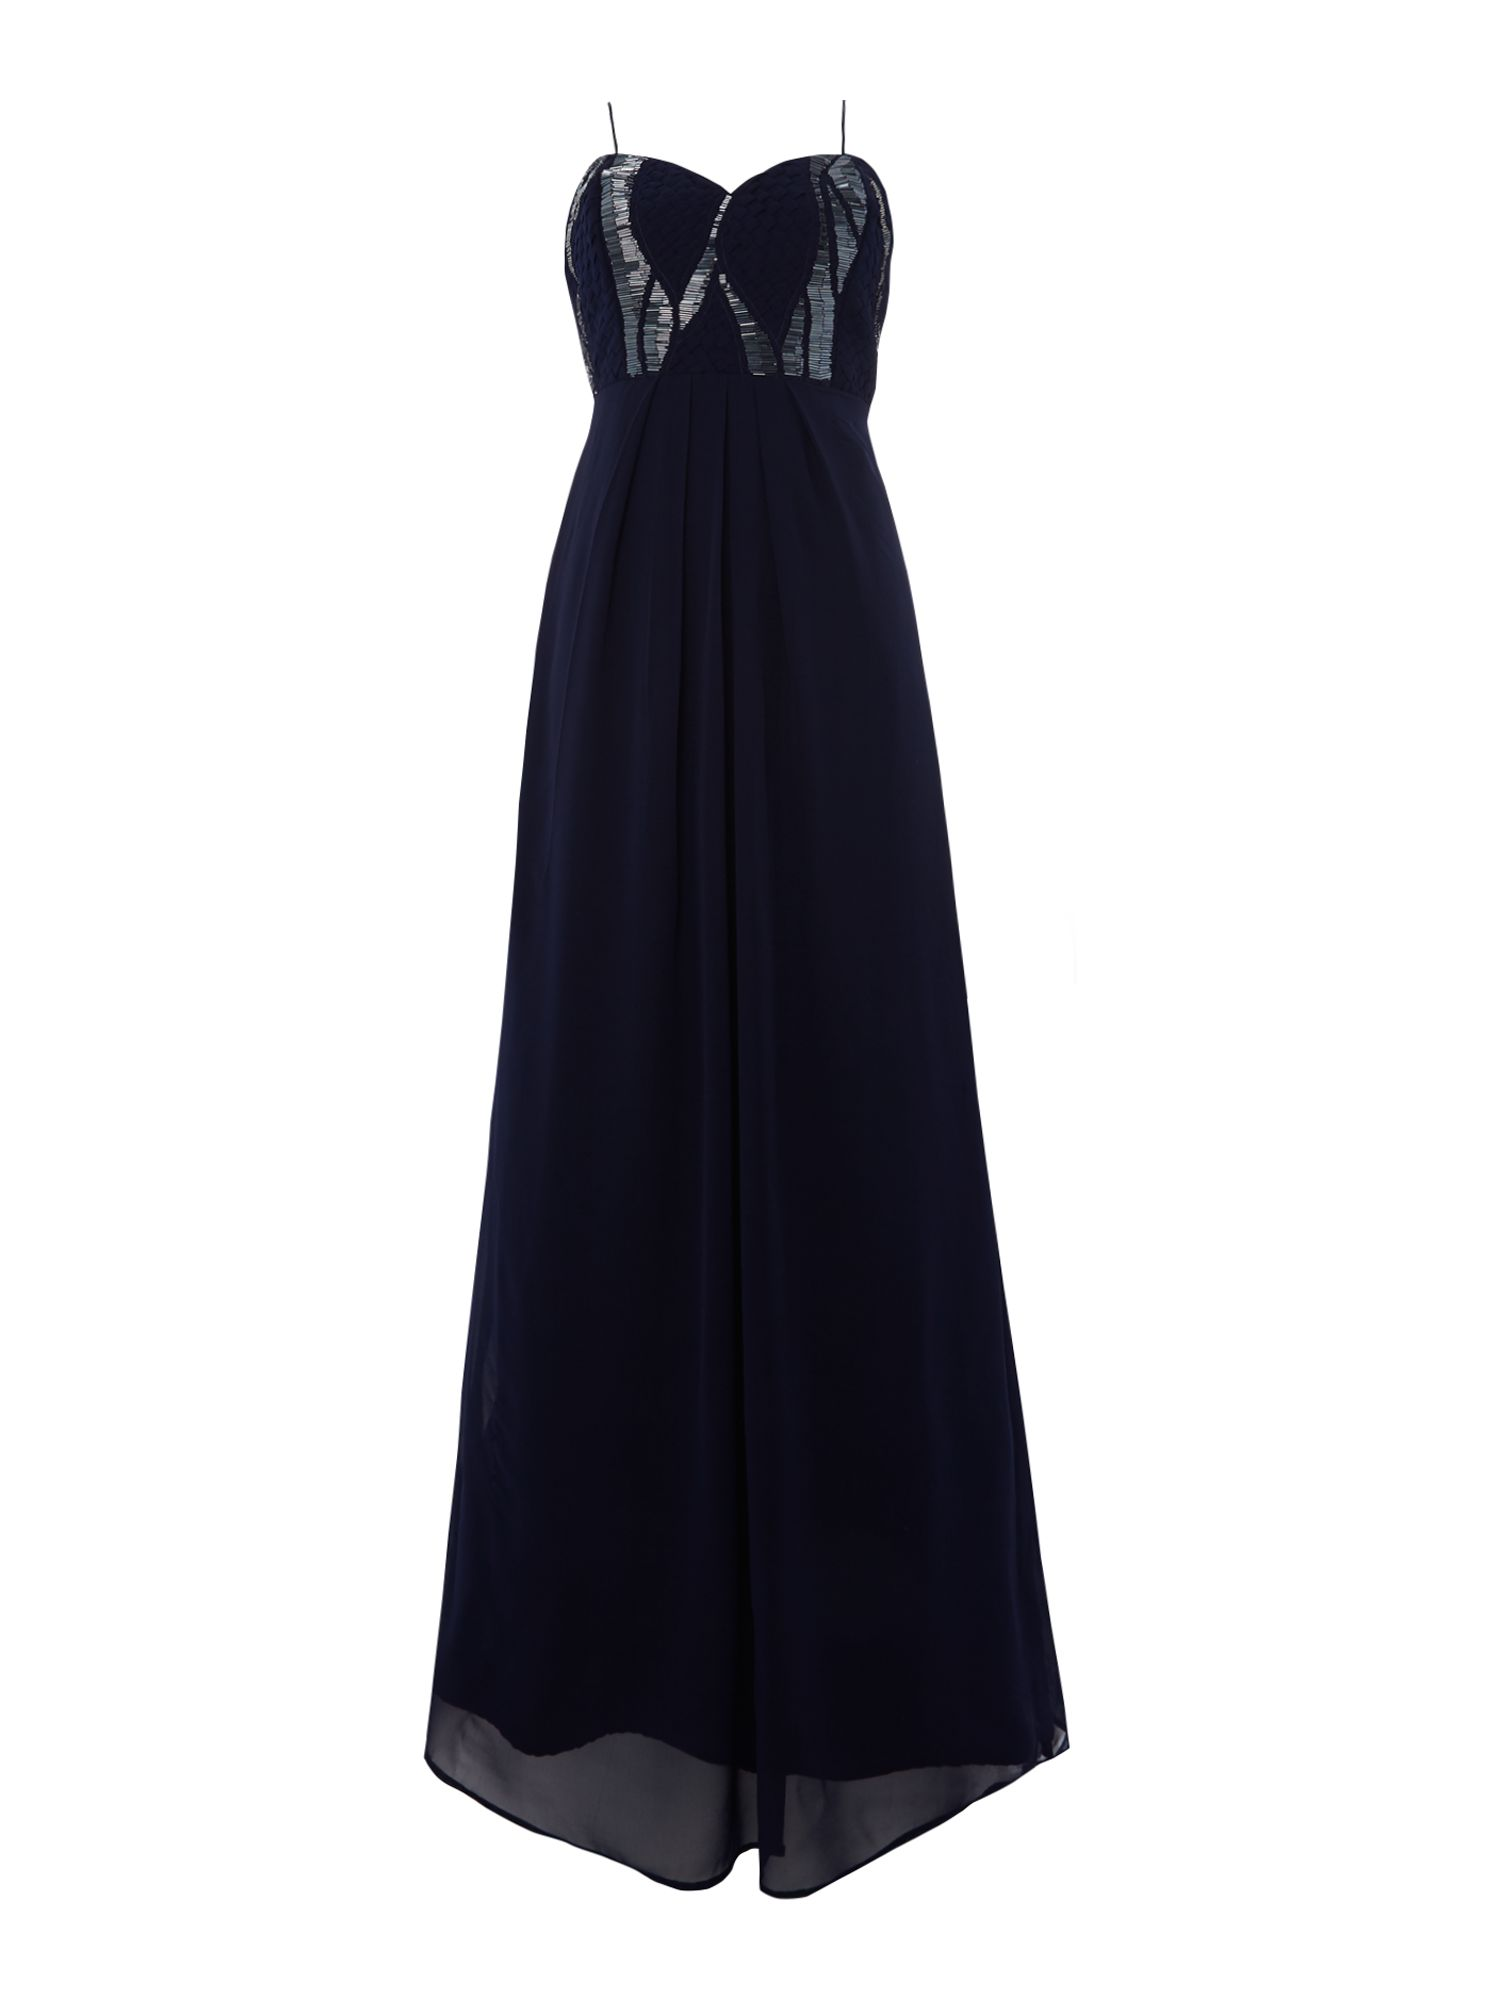 Lace and Beads Lace and Beads Bandeau Beaded Top Maxi Dress, Navy